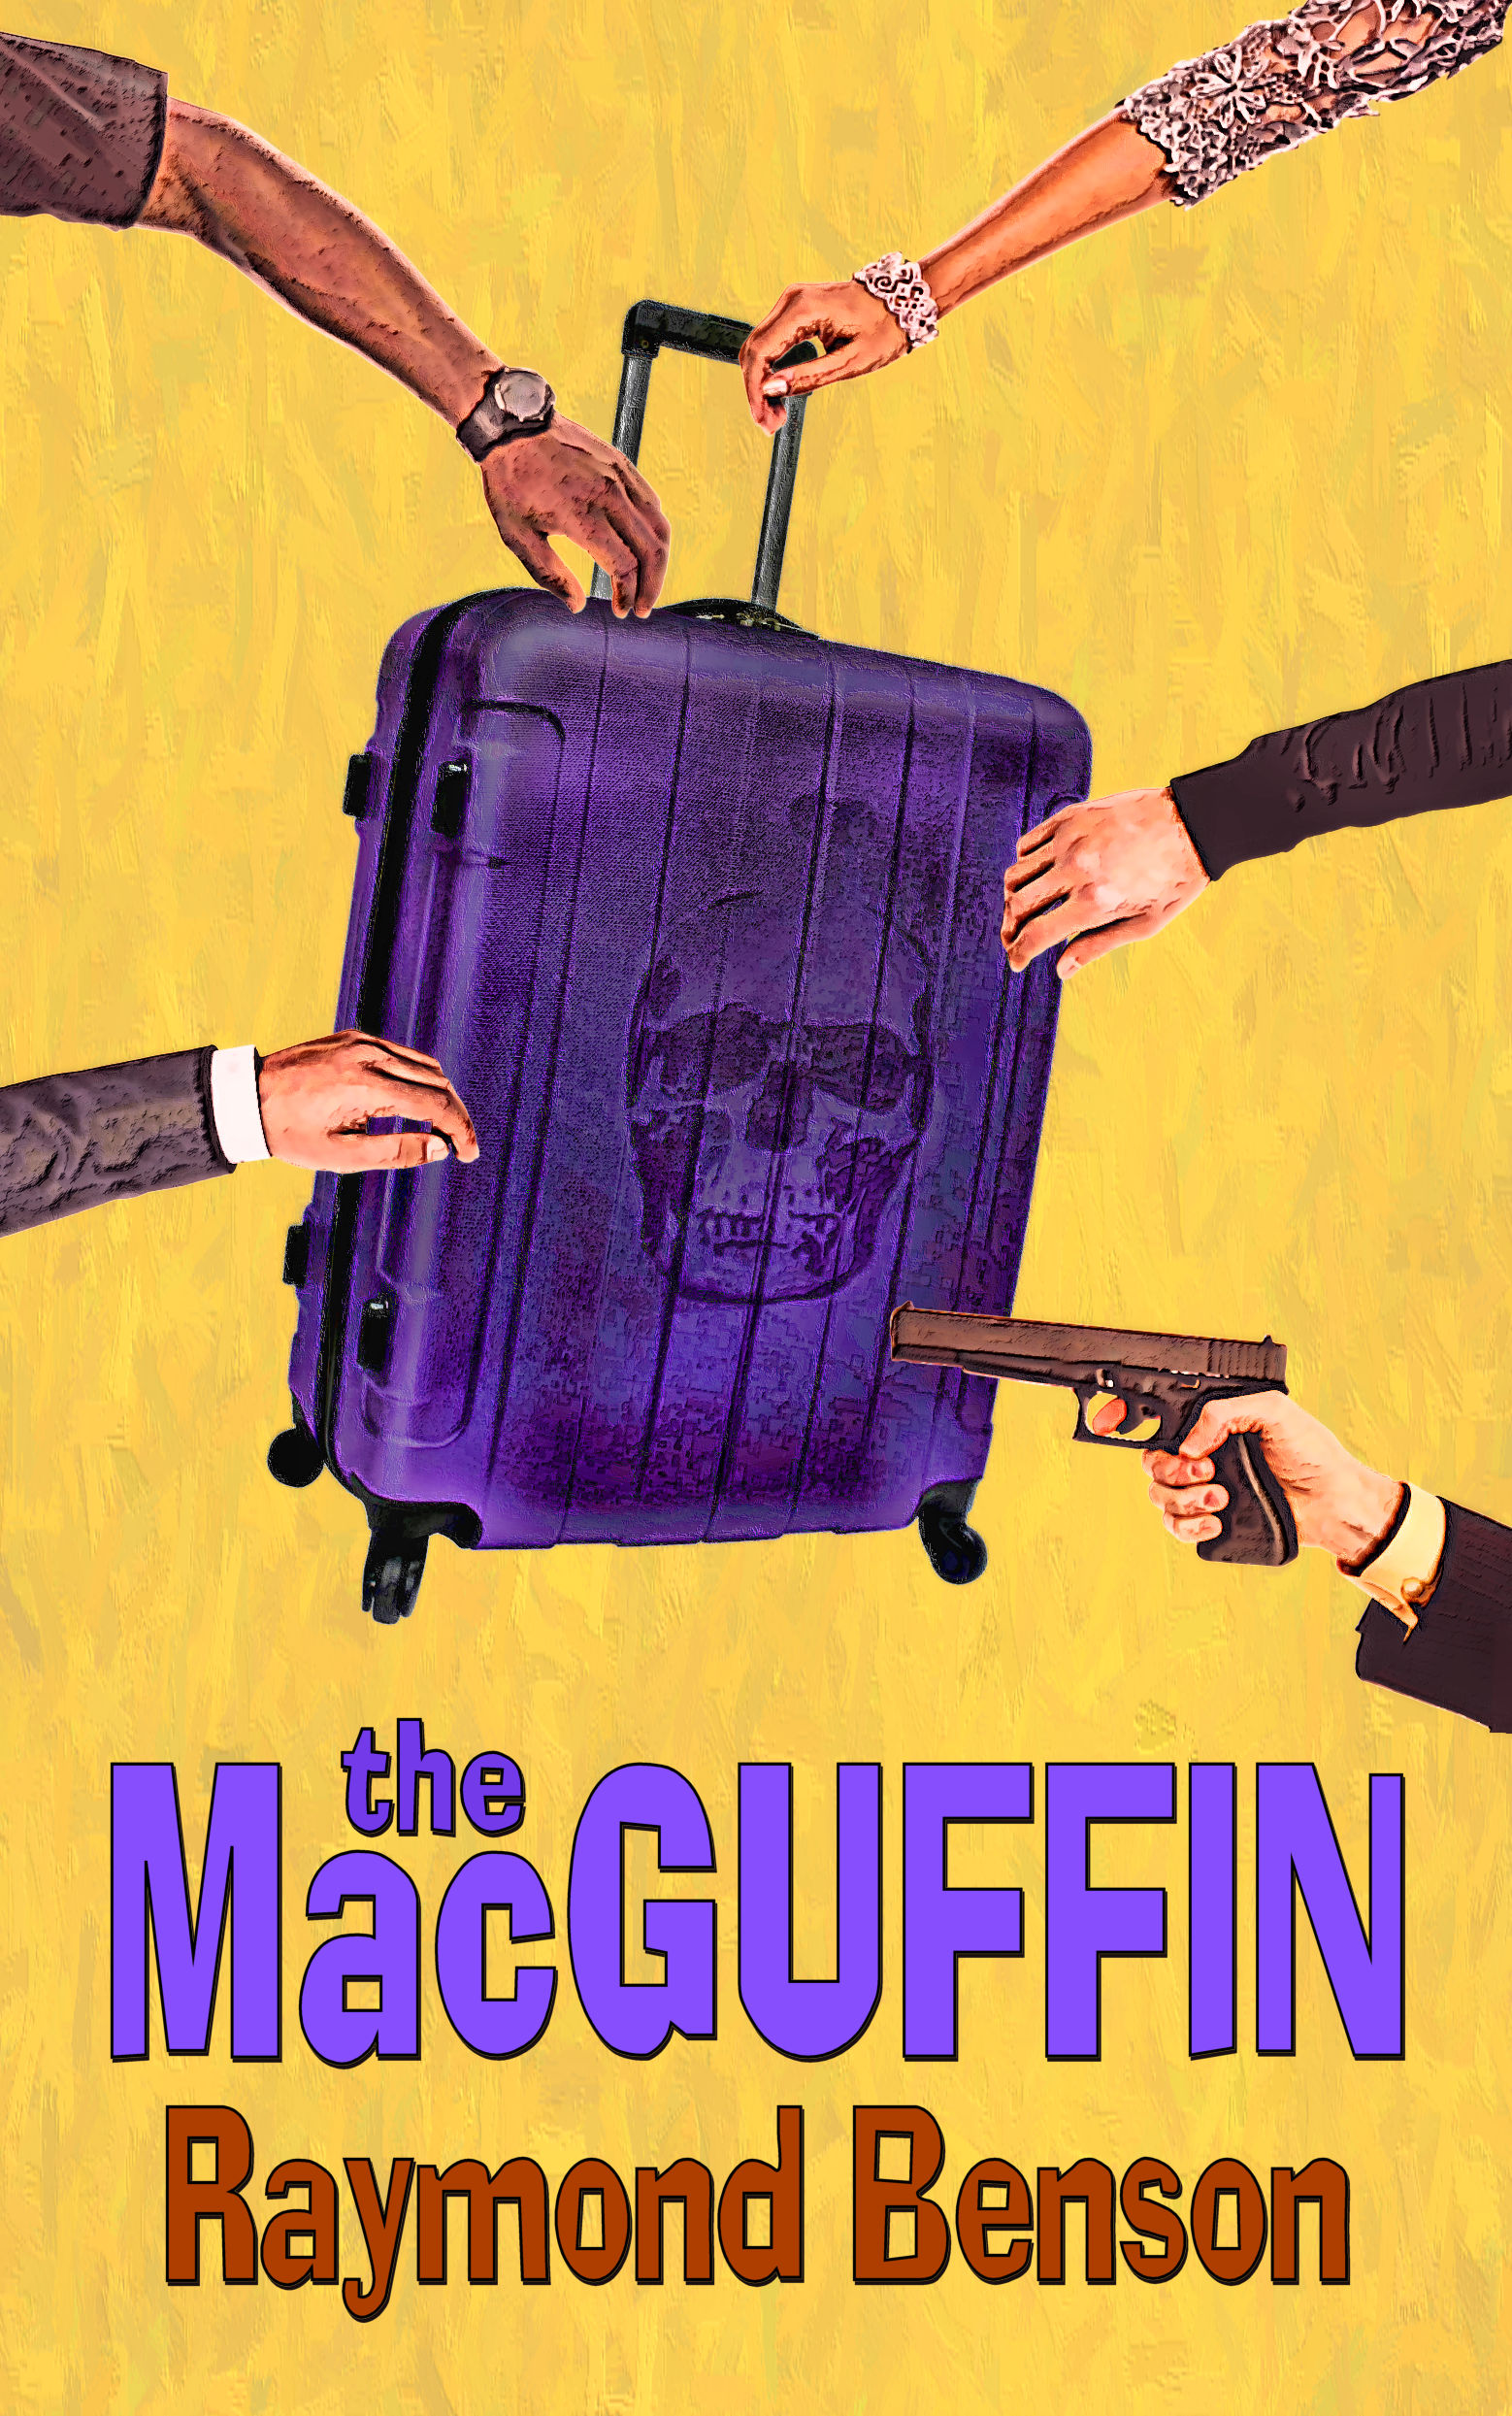 The MacGuffin by Raymond Benson